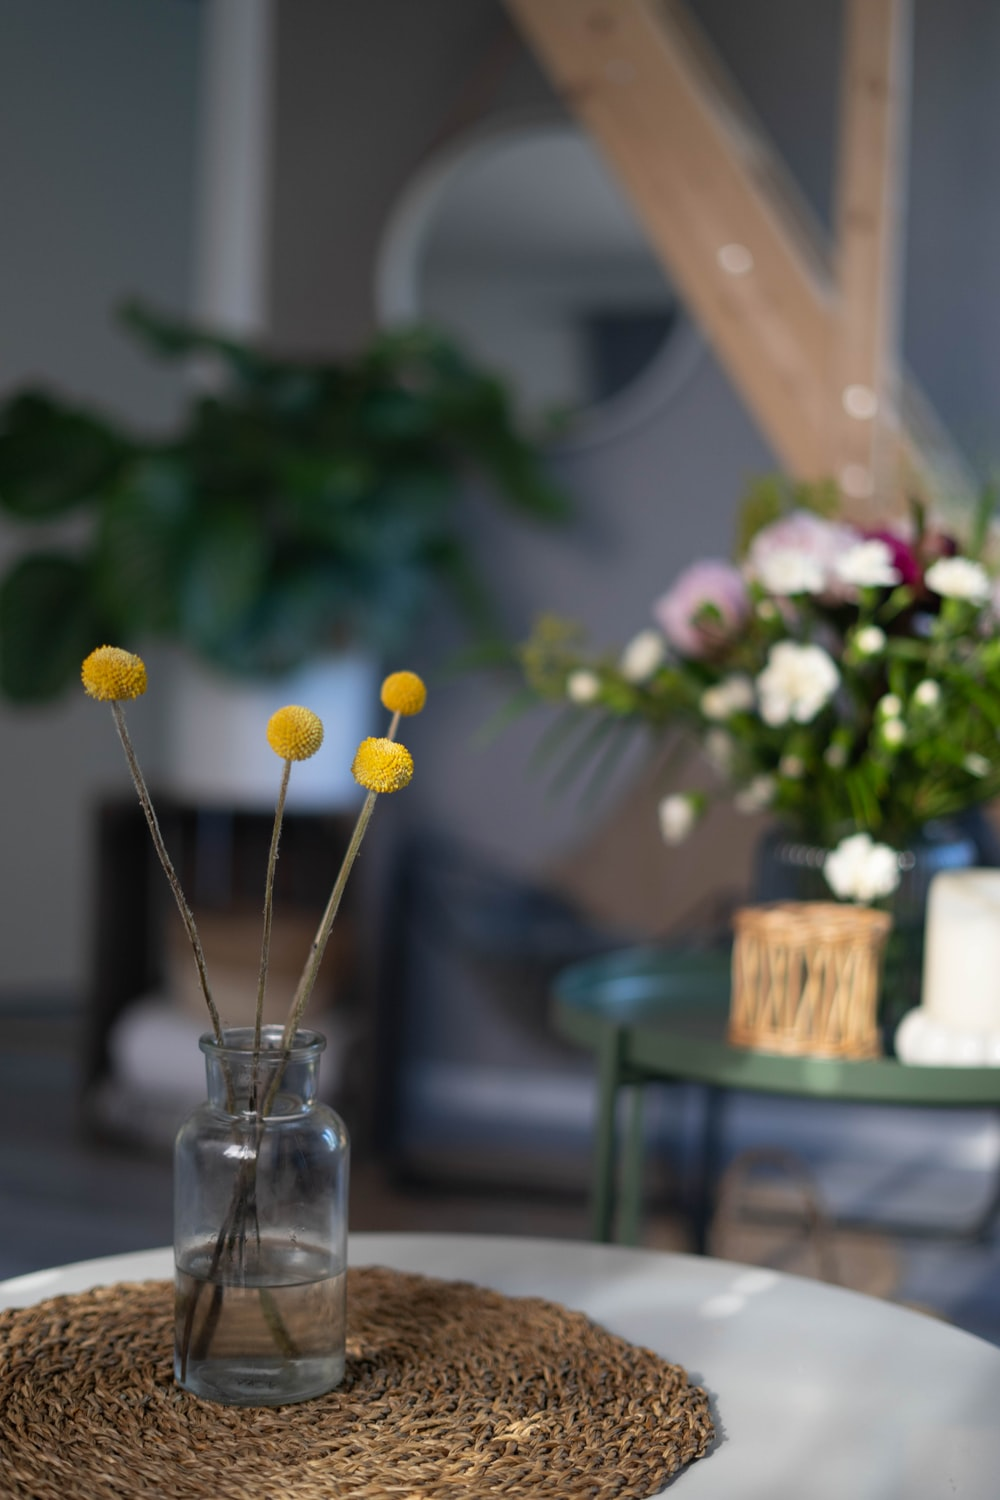 yellow and white flowers in clear glass vase